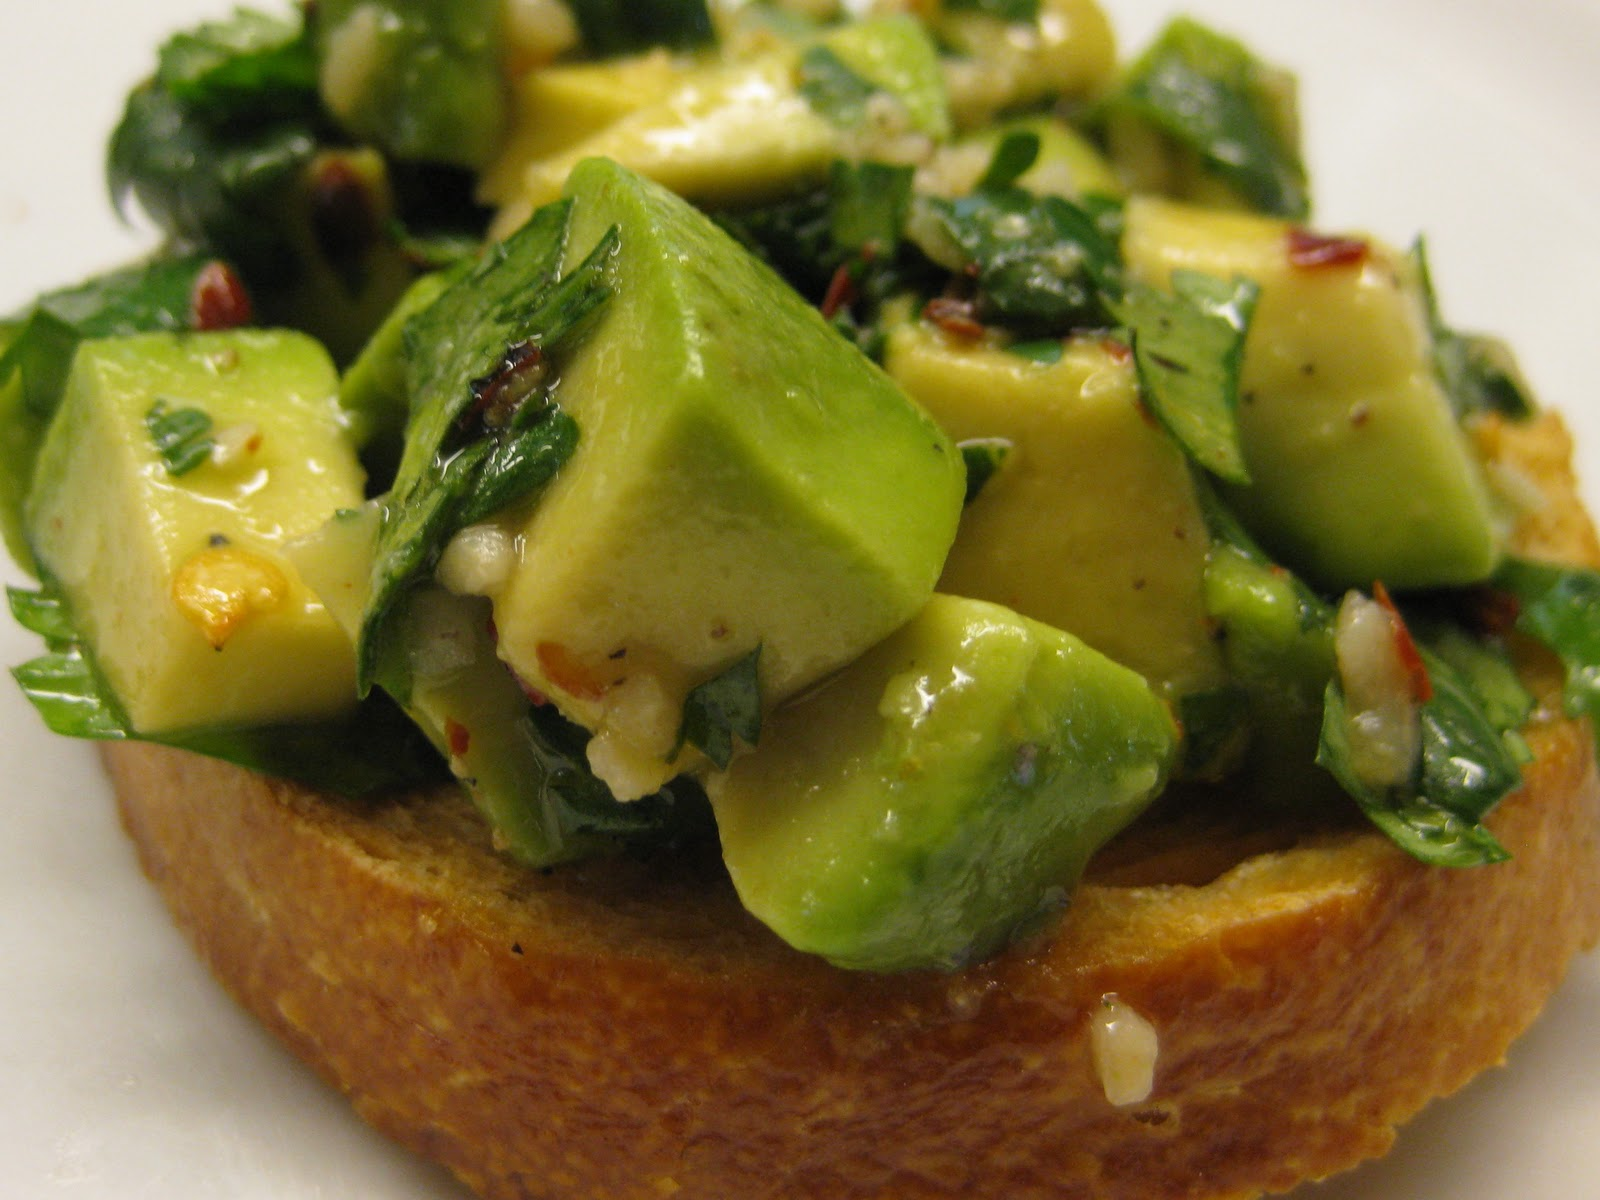 Speak Vegan To Me: Avocado Chimichurri Bruschetta